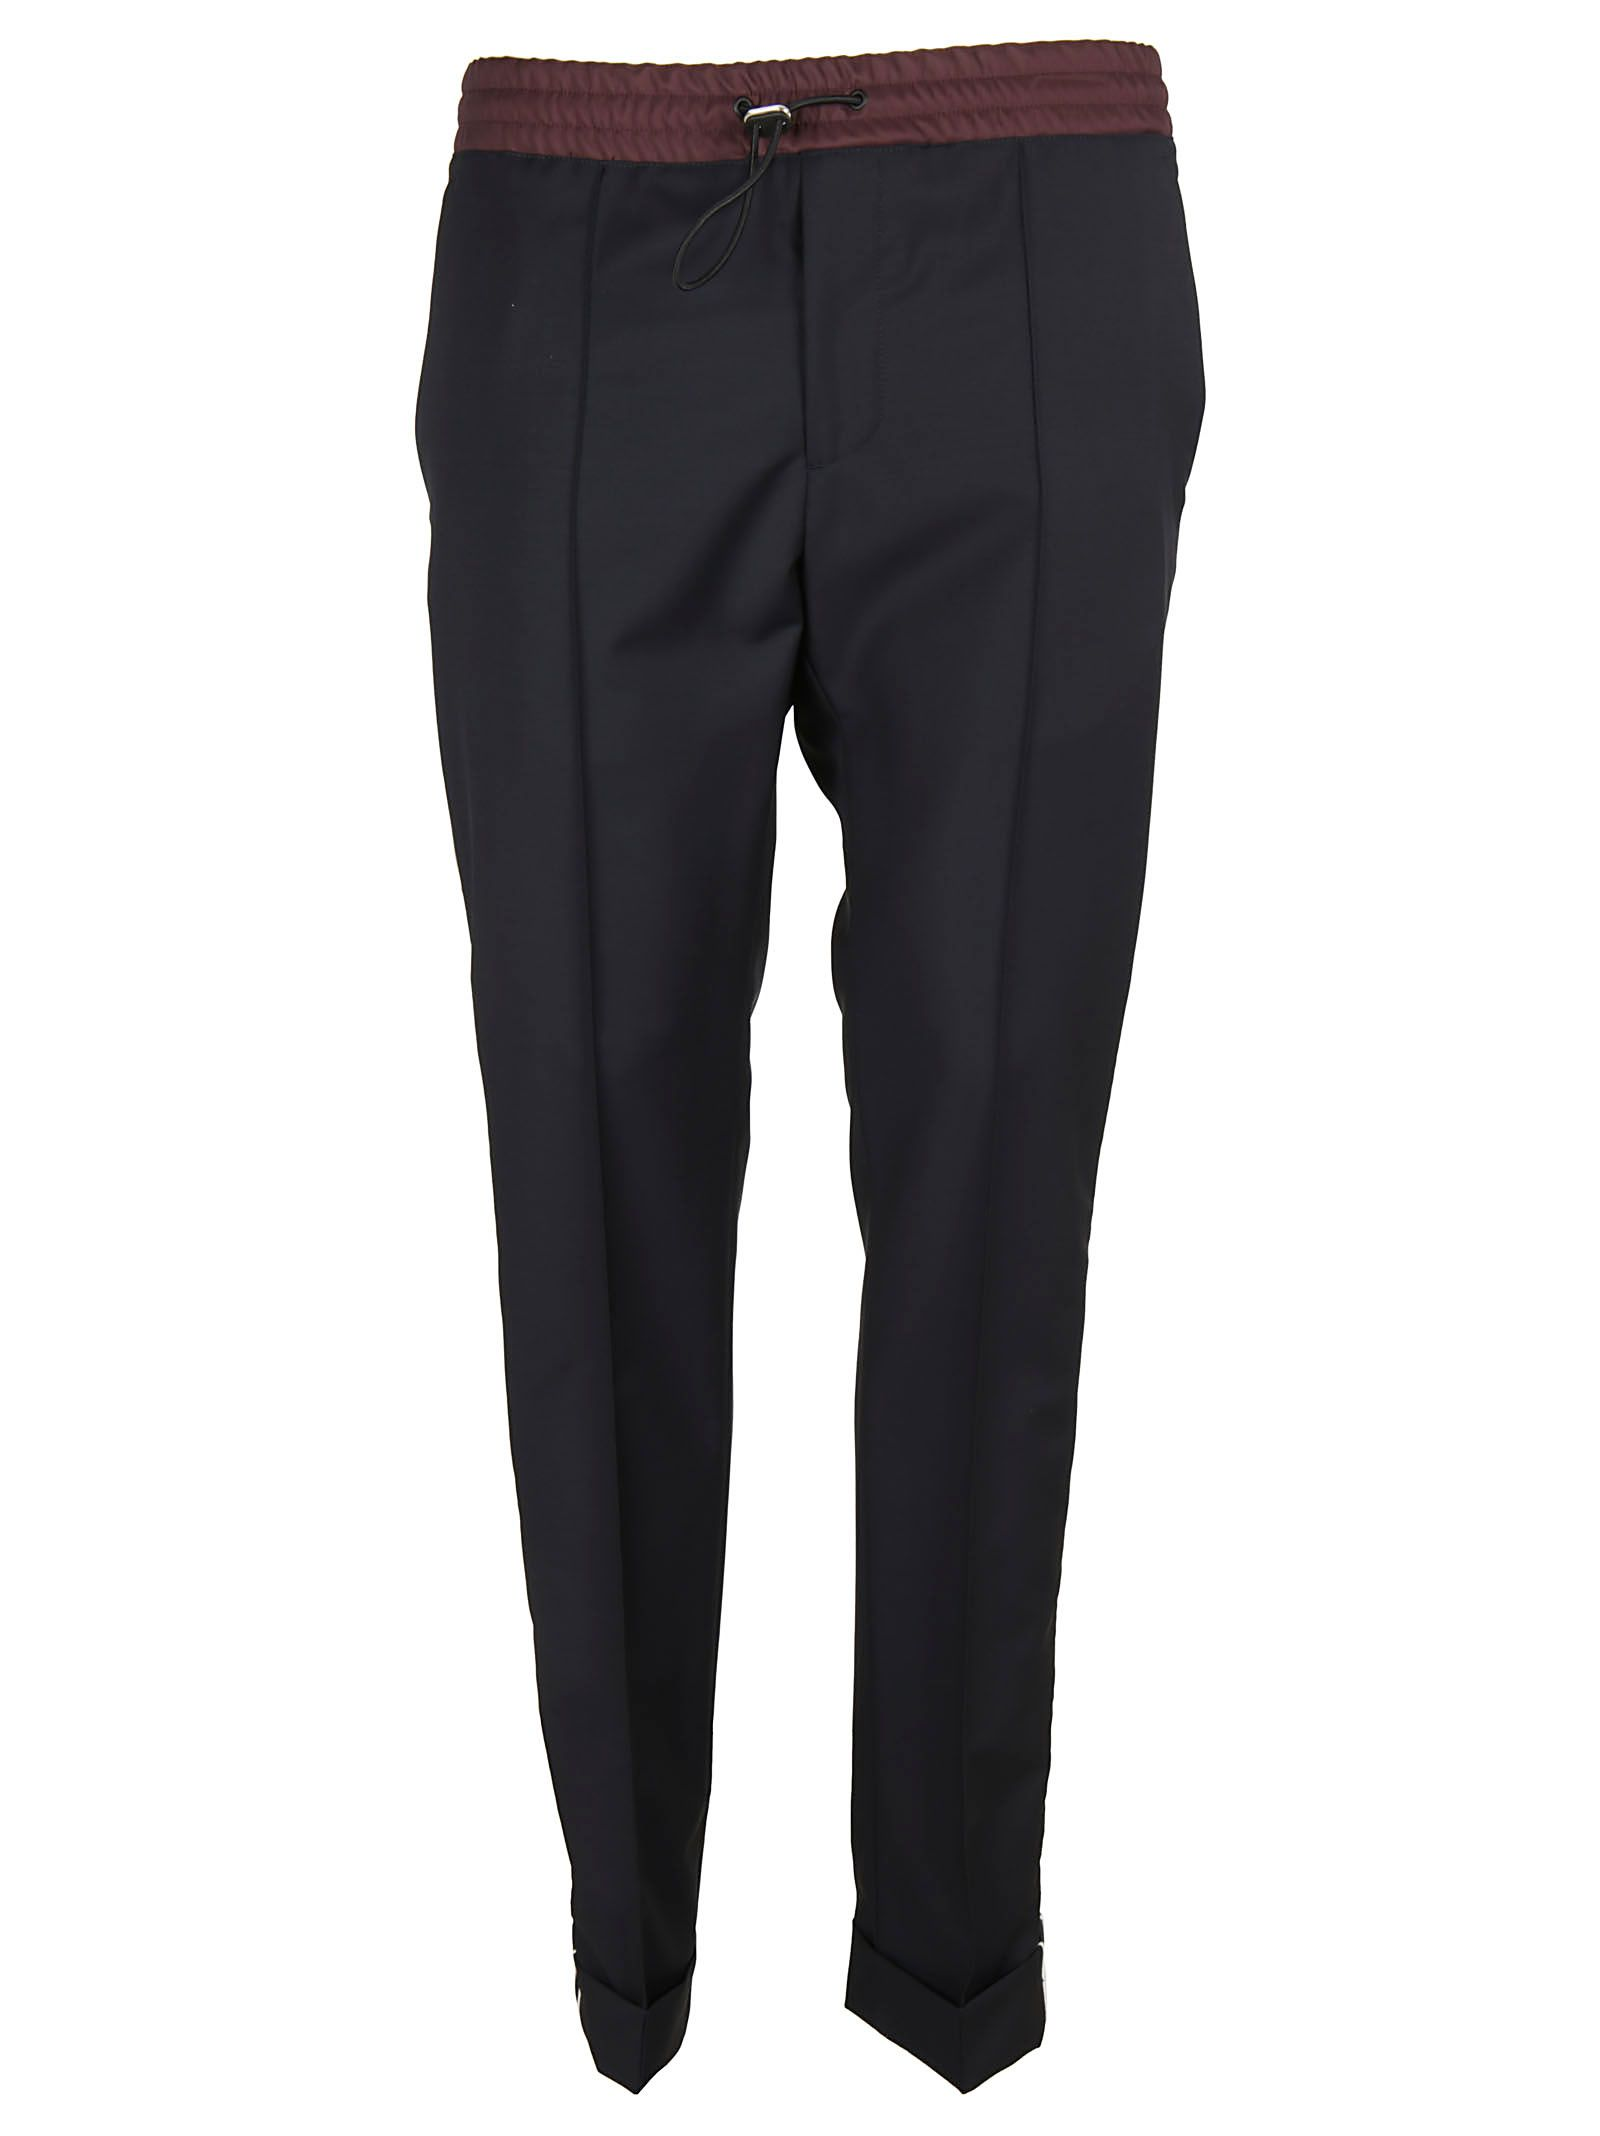 Valentino Elasticated Trousers